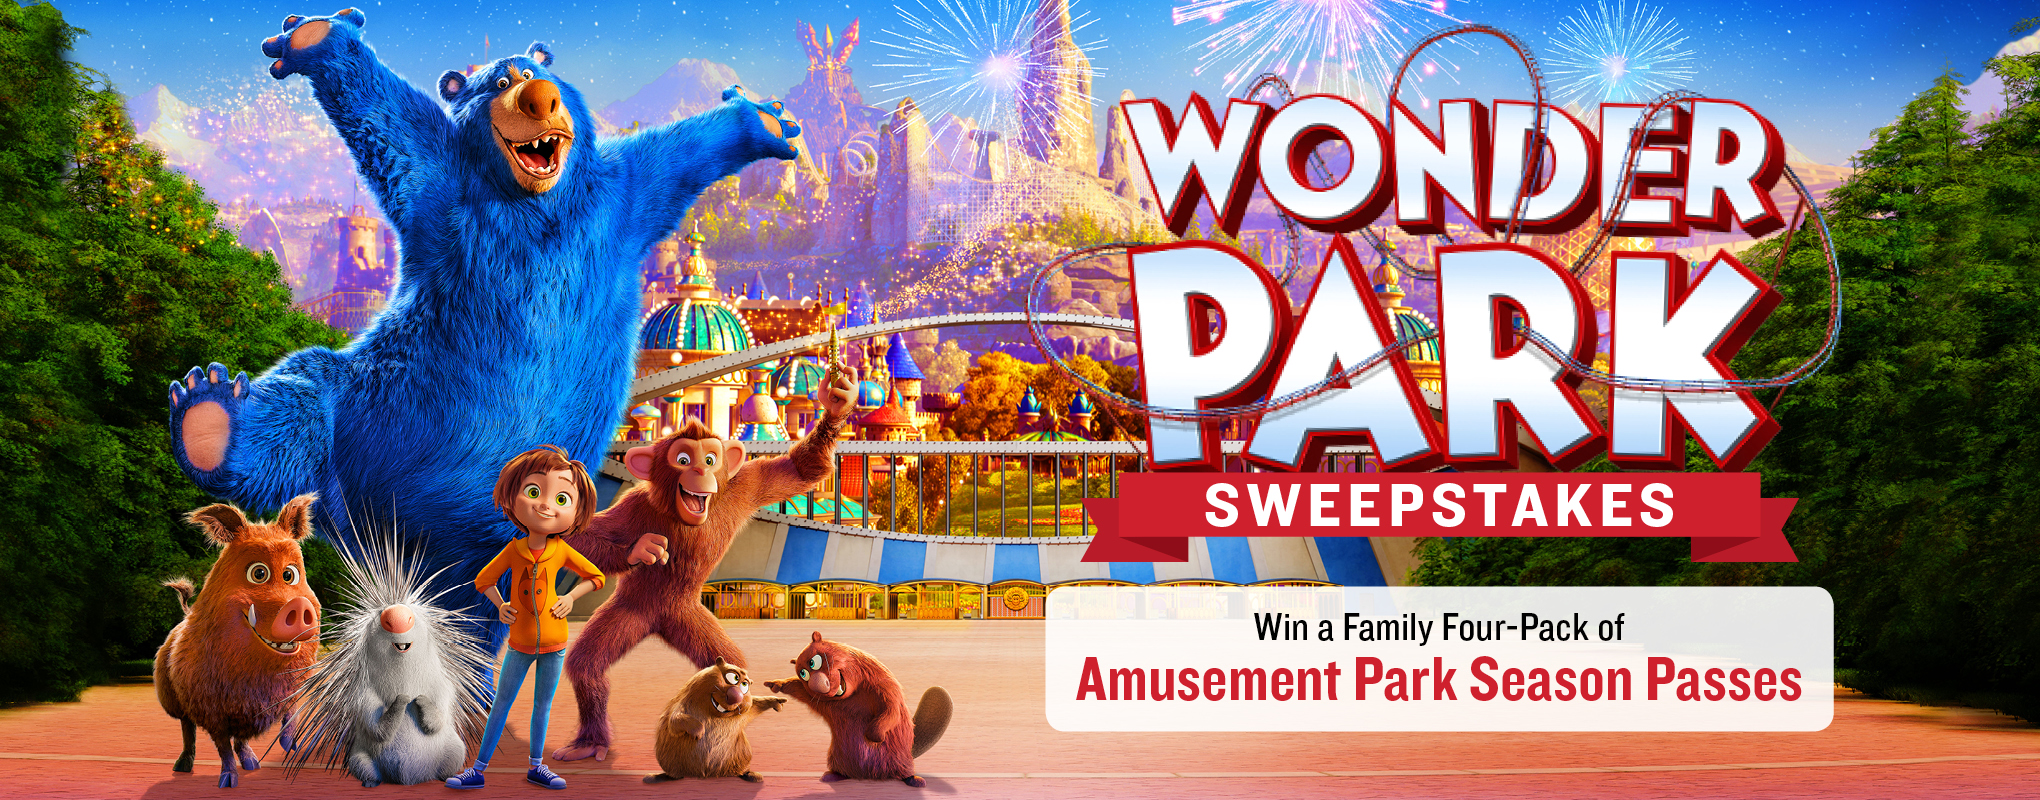 Wonder Park Sweepstakes